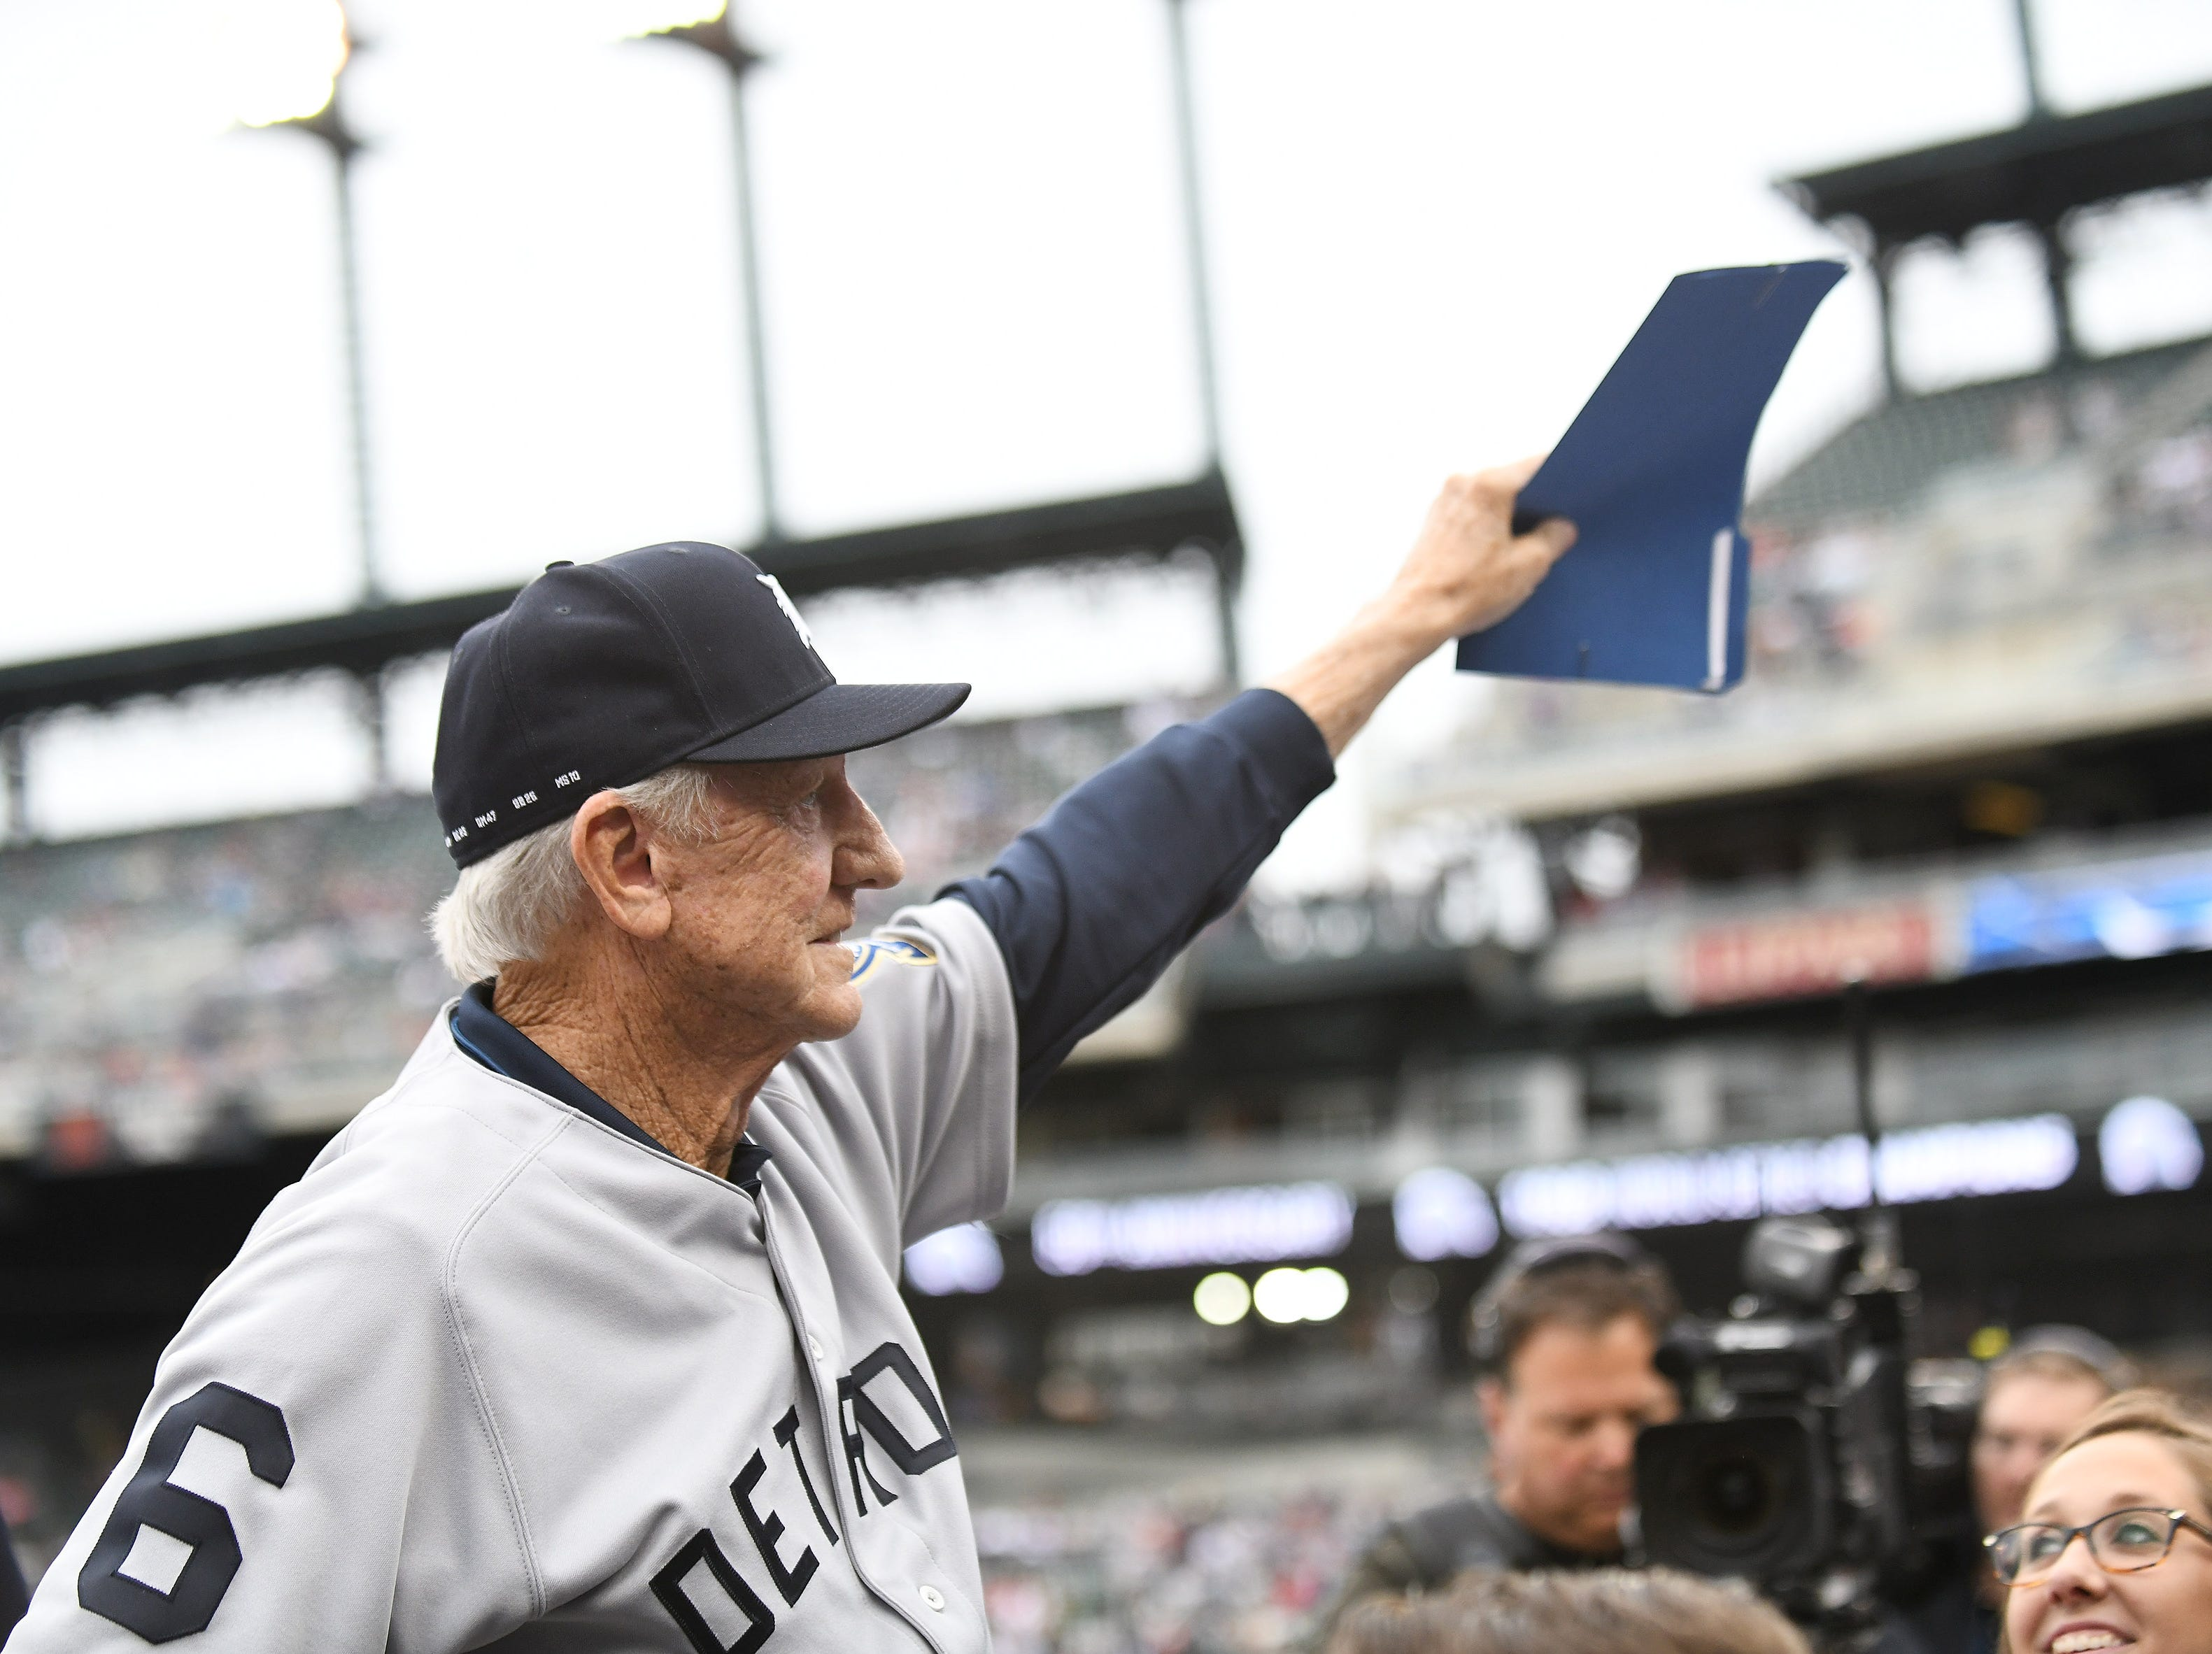 Al Kaline, Hall of Famer and member of the 1968 Tigers, waves to the crowd as he is introduced.